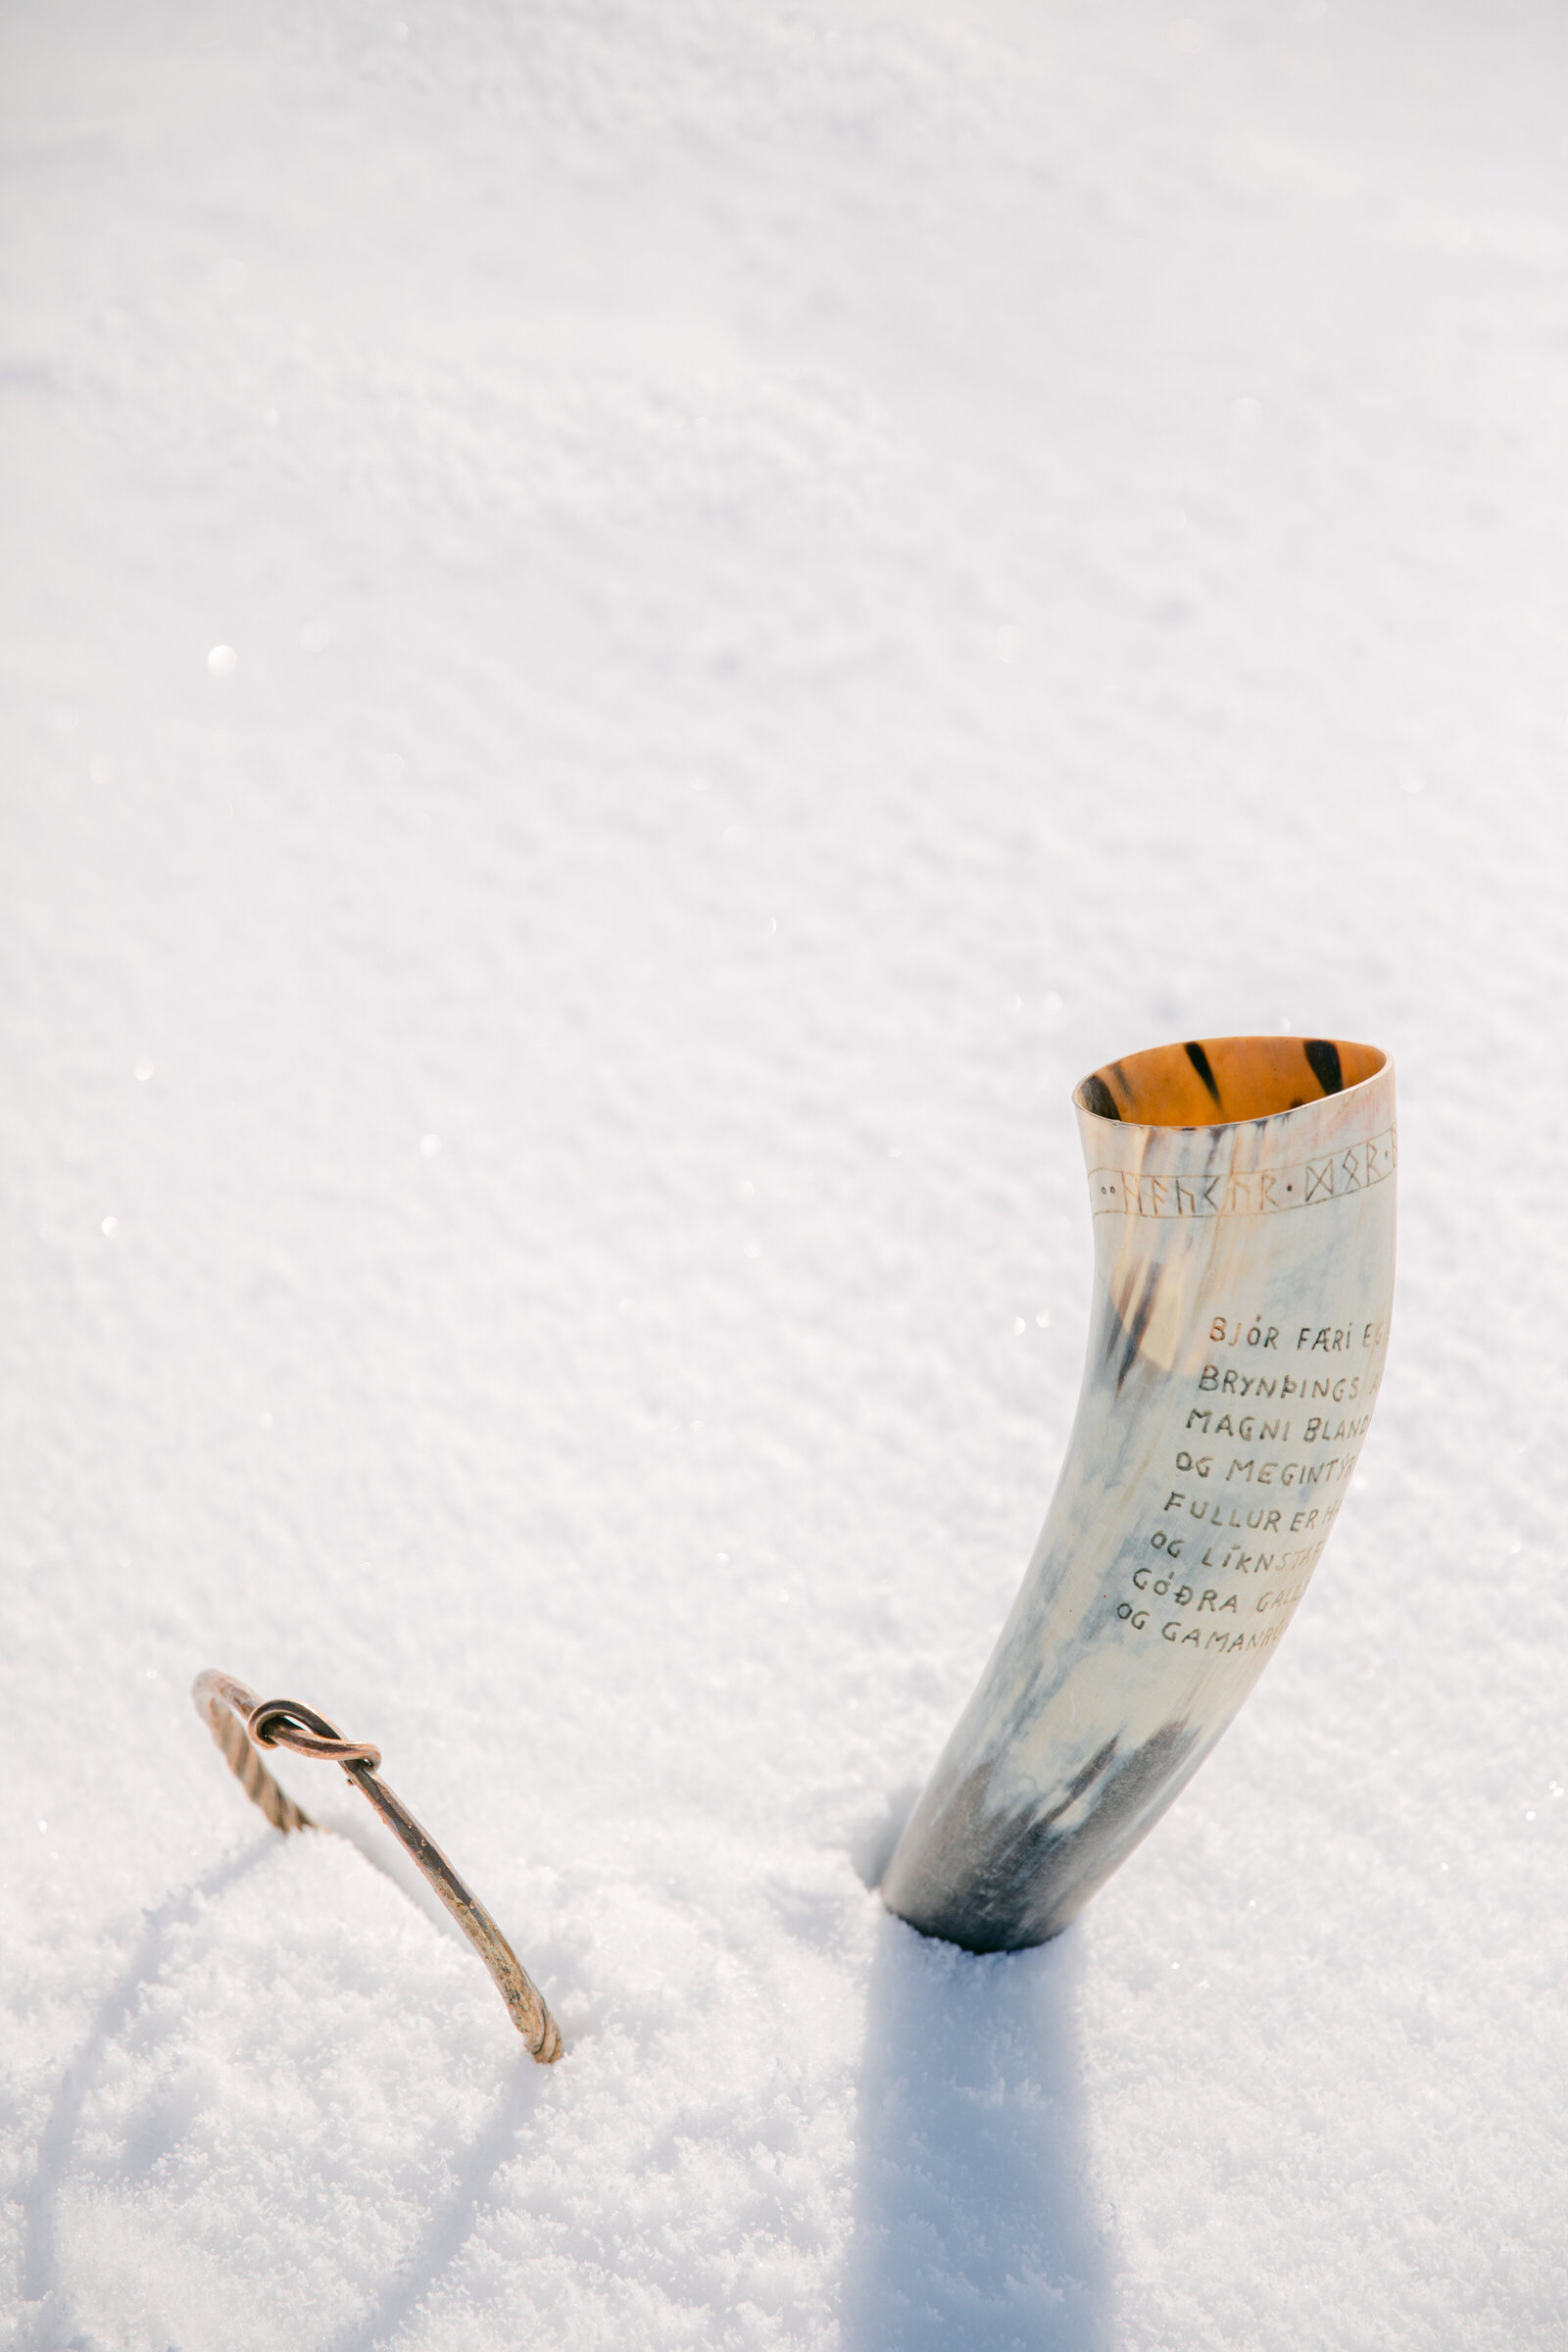 horn mug in the snow on a glacier in iceland